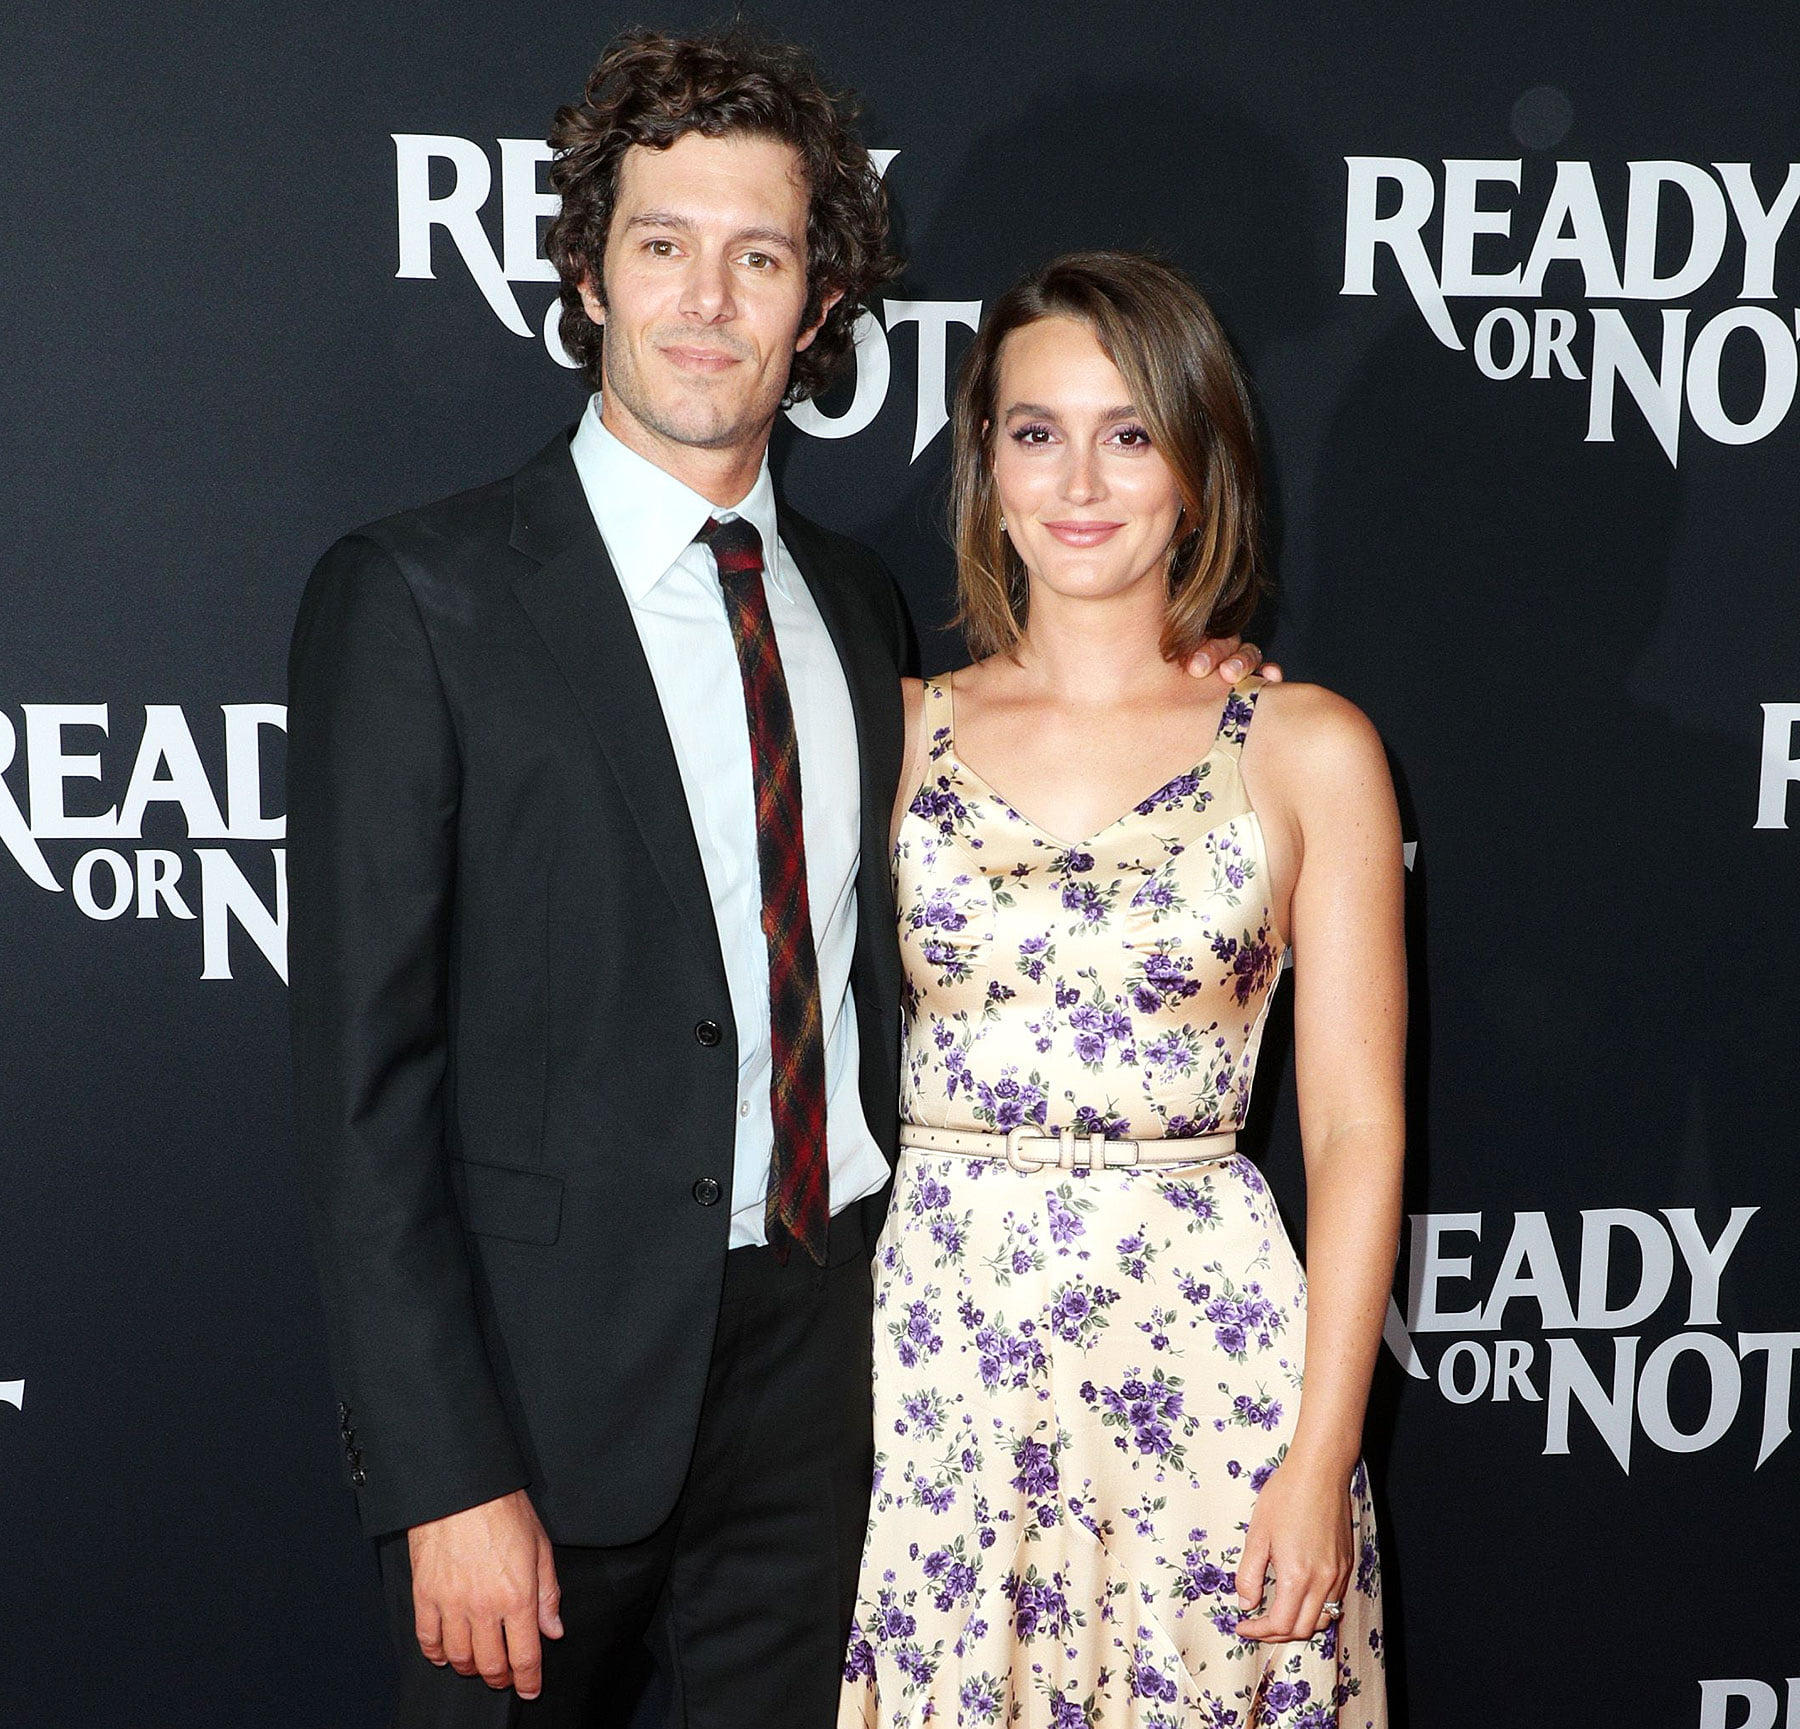 Leighton Meester Daughter Reacts to Her and Adam Brody Working Together